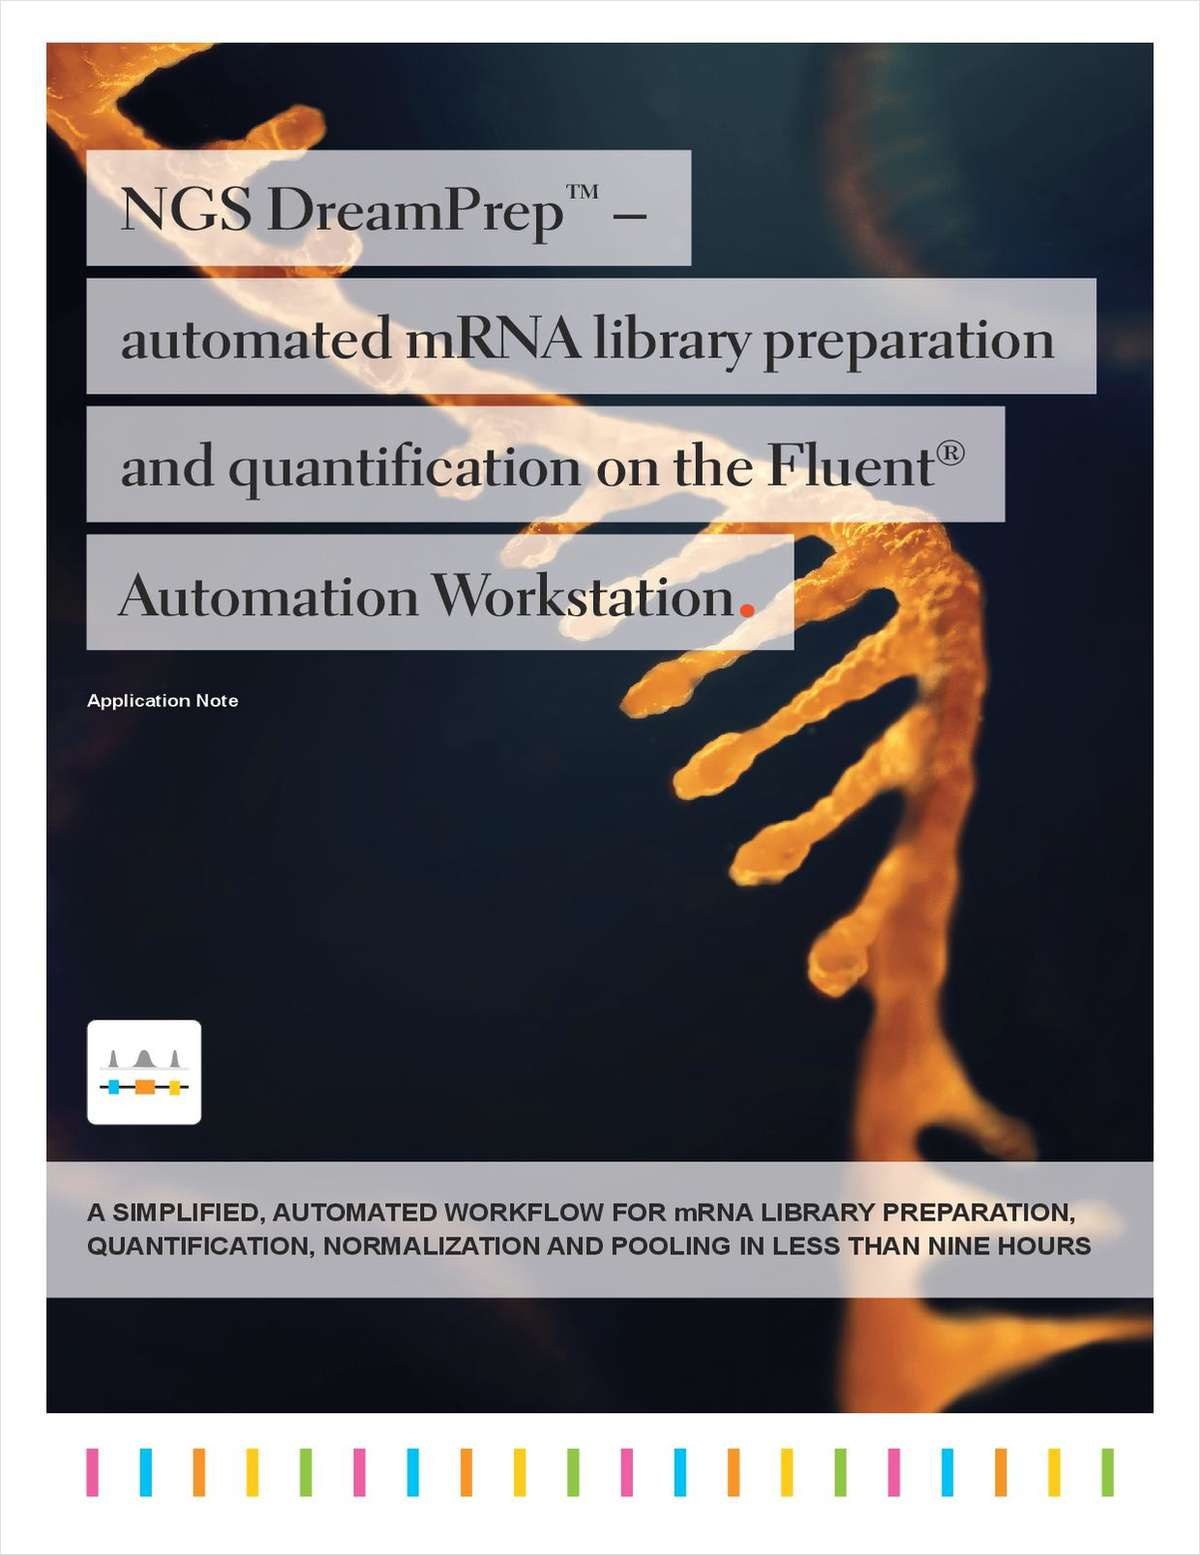 NGS Dreamprep -- Automated mRNA Library Preparation and Quantification on the Fluent Automation Workstation